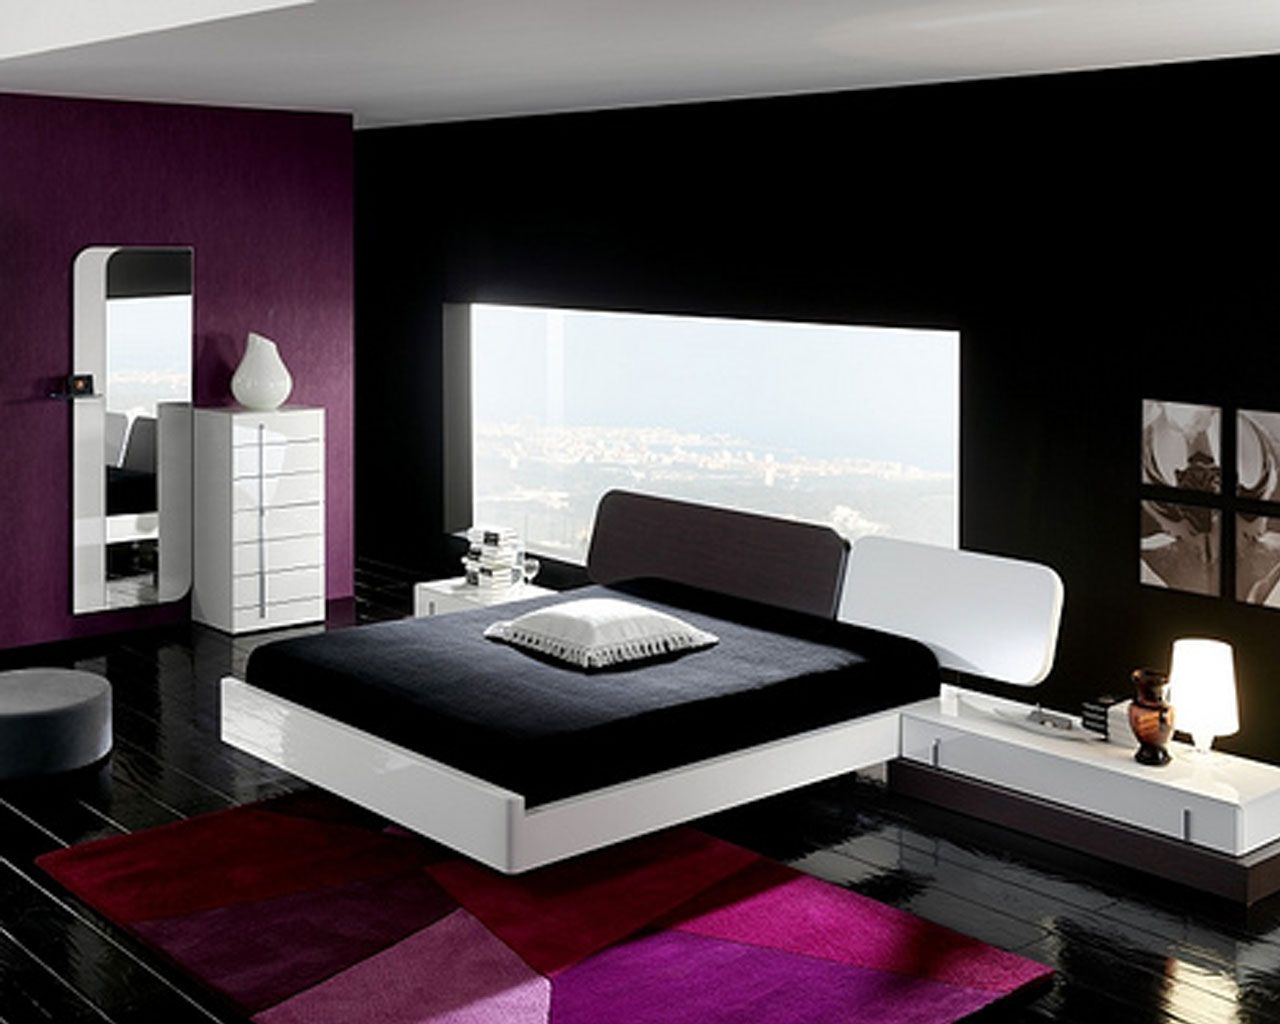 Here Is Black And White And Purple Bedrooms Decor And Design Theme Ideas  Photo Collections At Modern Bedroom Design Catalogue. More Picture Design  Black And ... Part 4